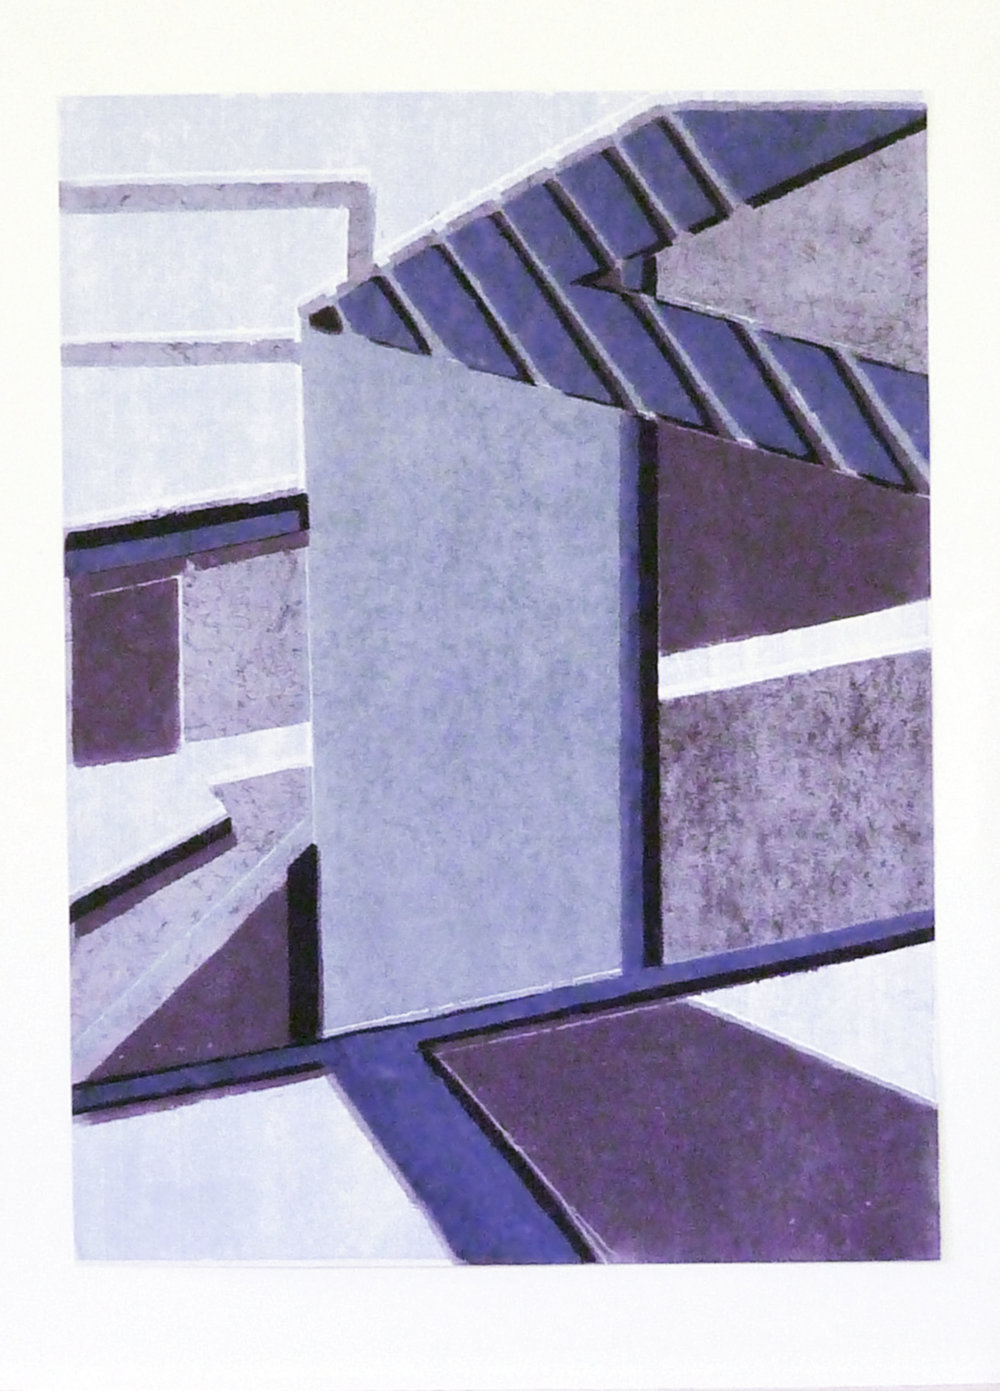 Cityscape 2  (varied edition), Rena Sava, 2014  Reduction relief print on paper